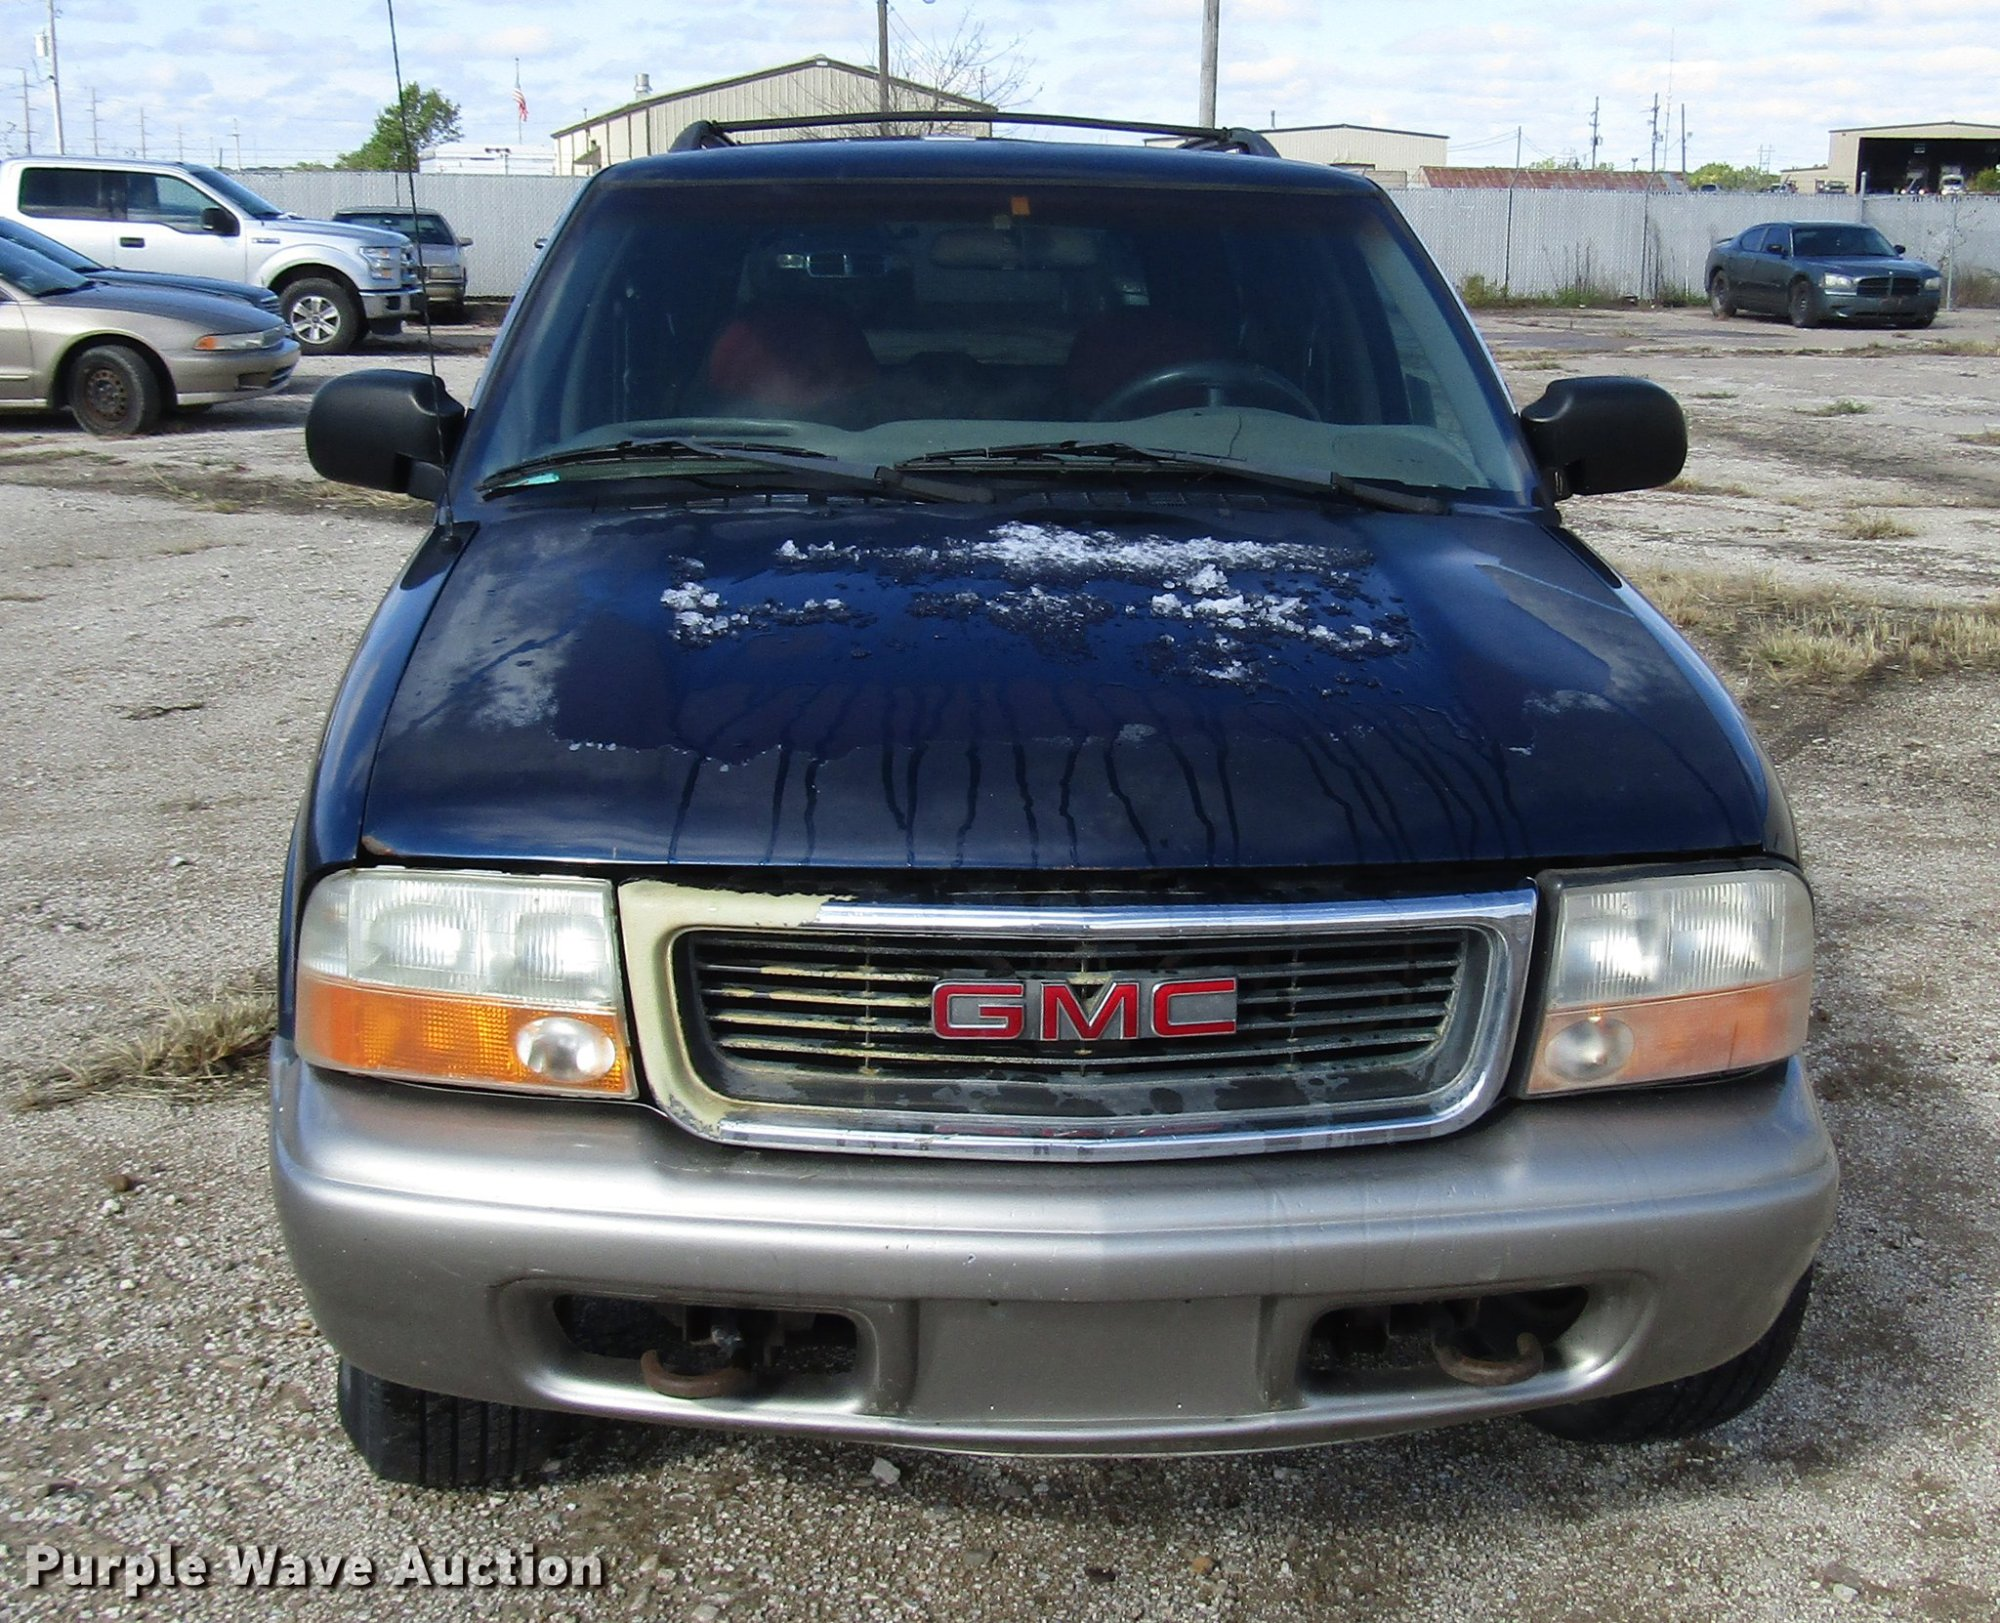 hight resolution of  2000 gmc jimmy envoy suv full size in new window